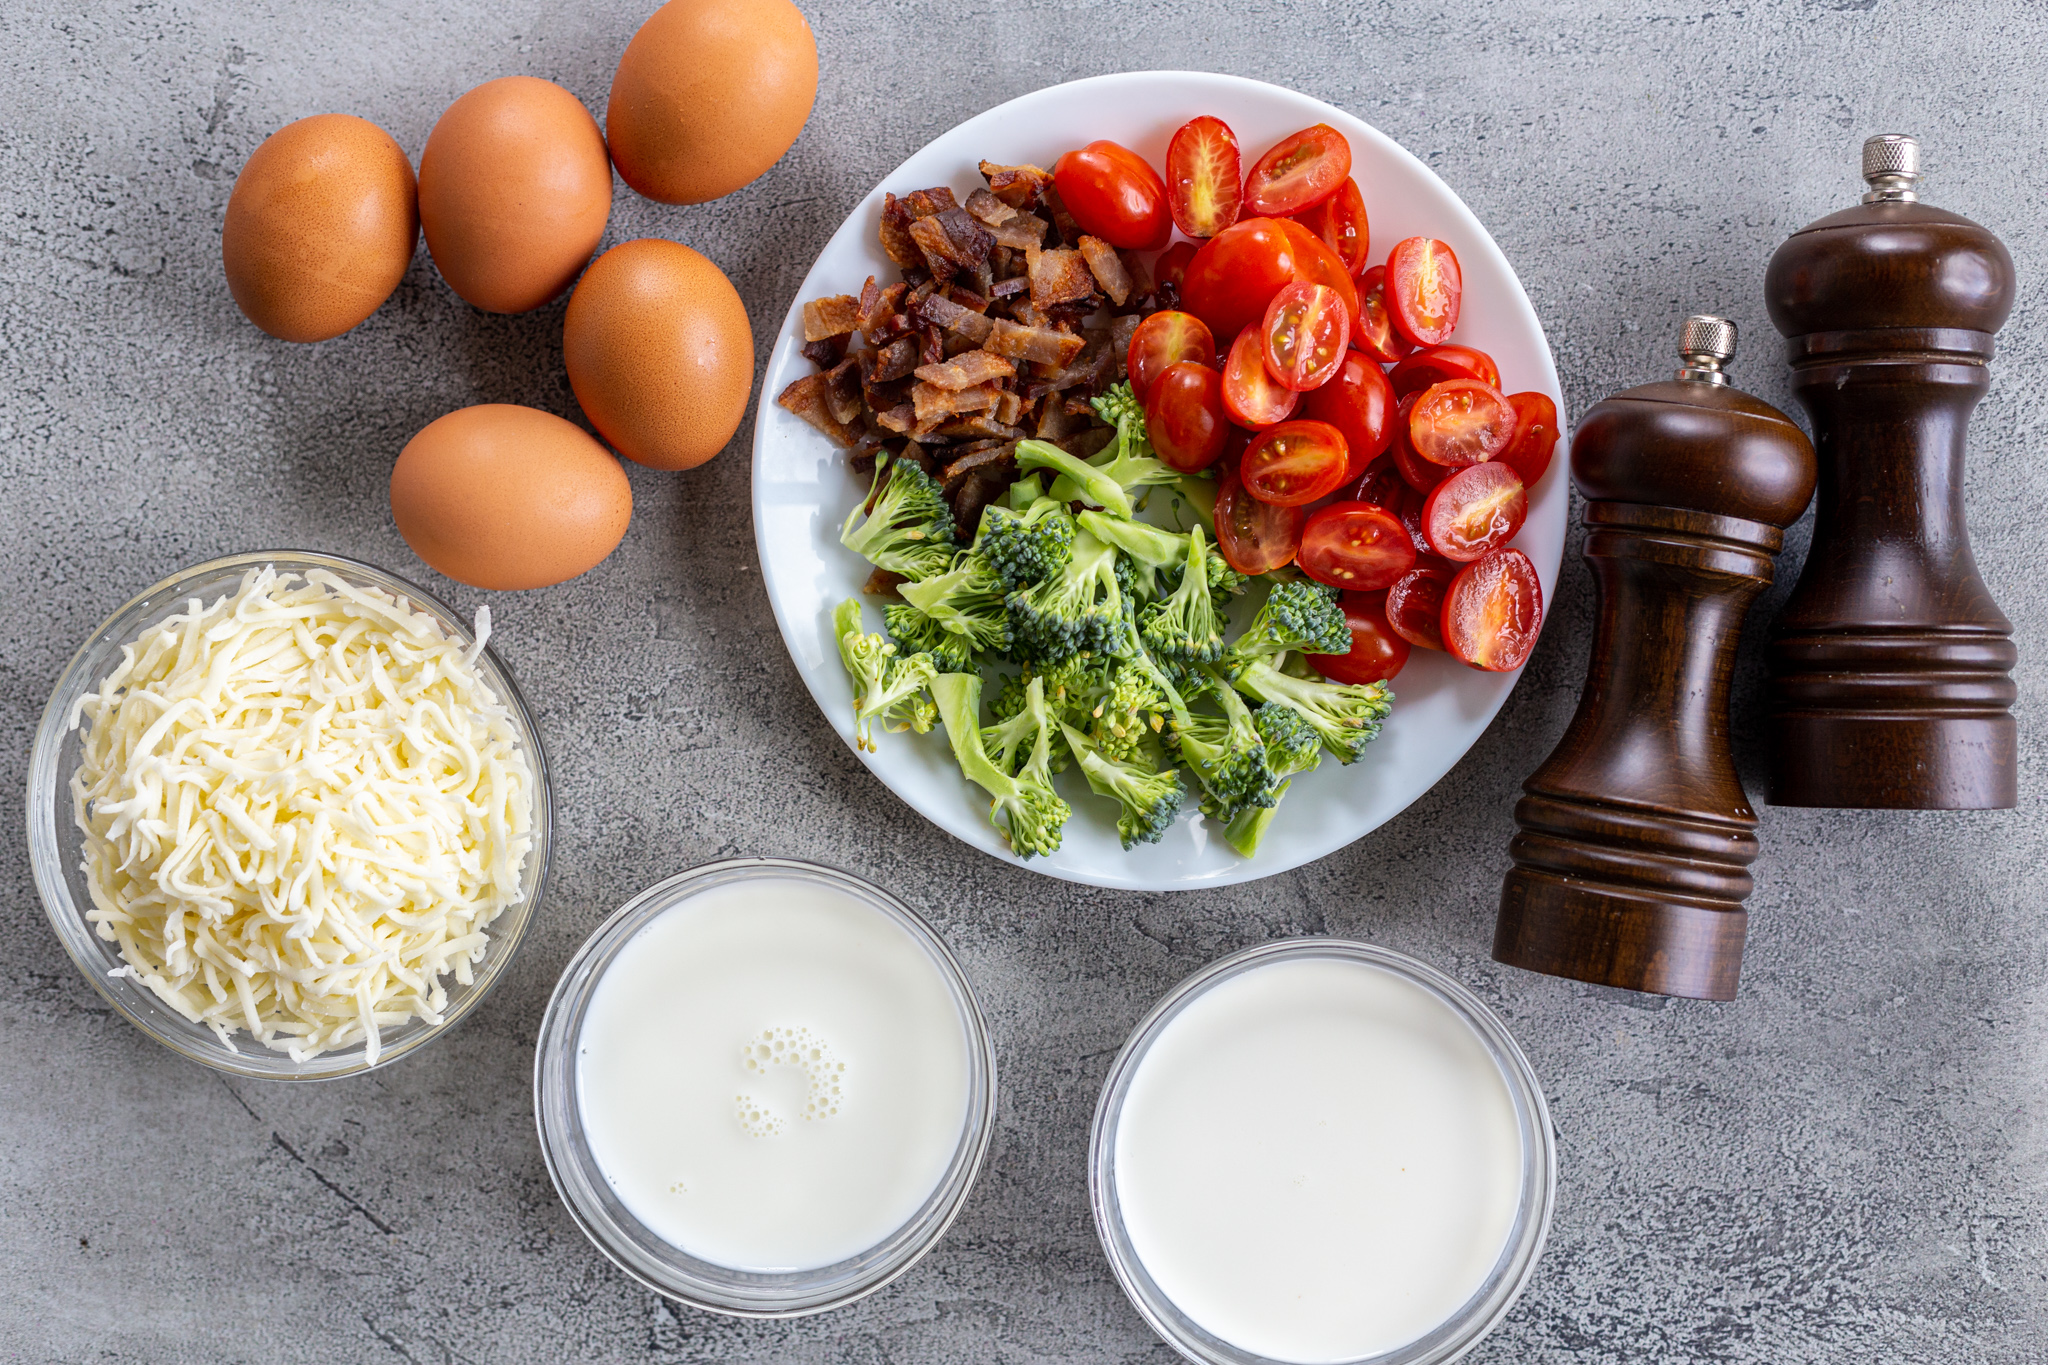 Ingredients for the crustless quiche